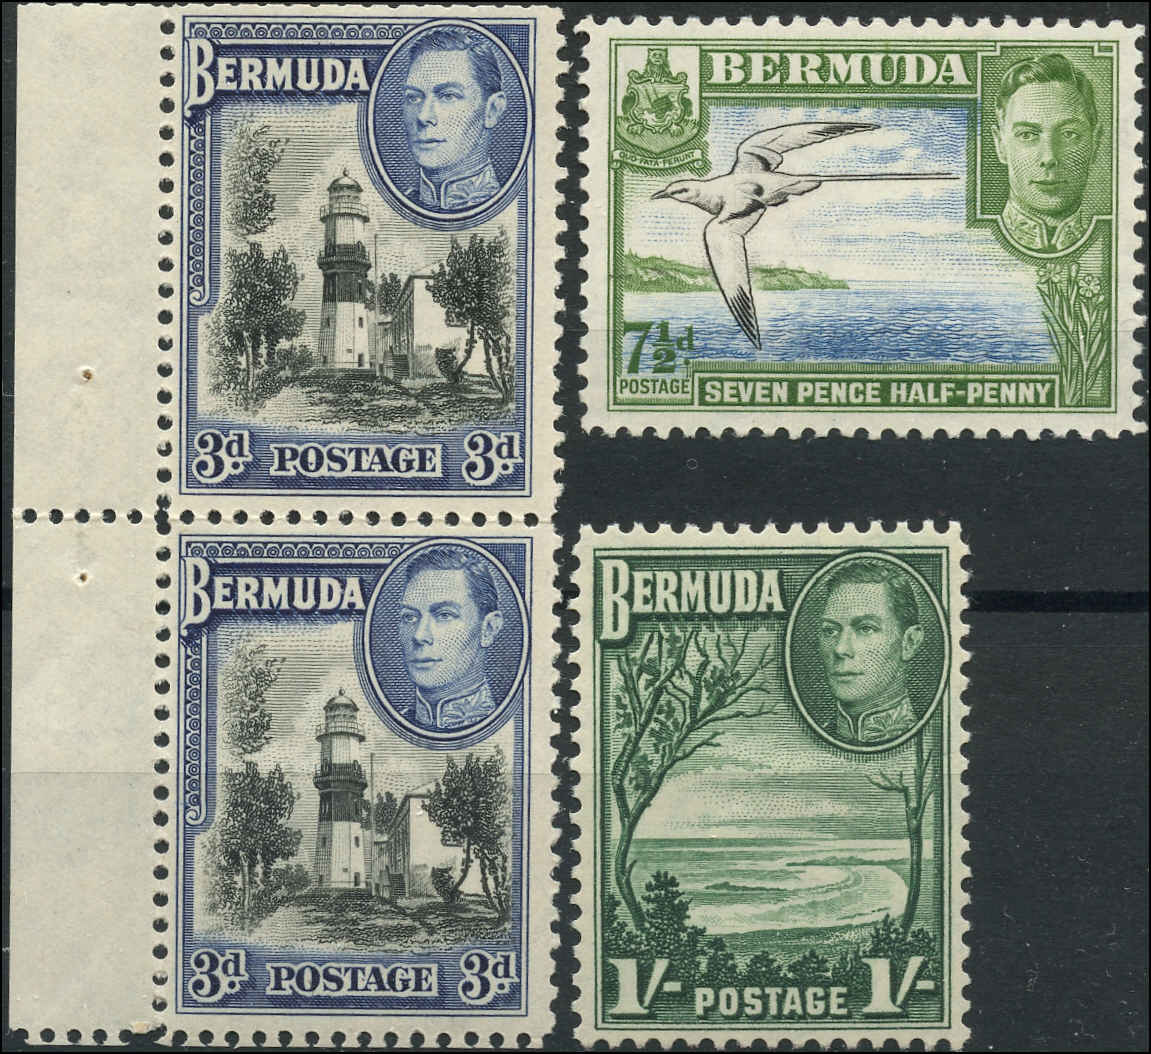 Bermuda Stamp, Scott #121-122, F+, MH